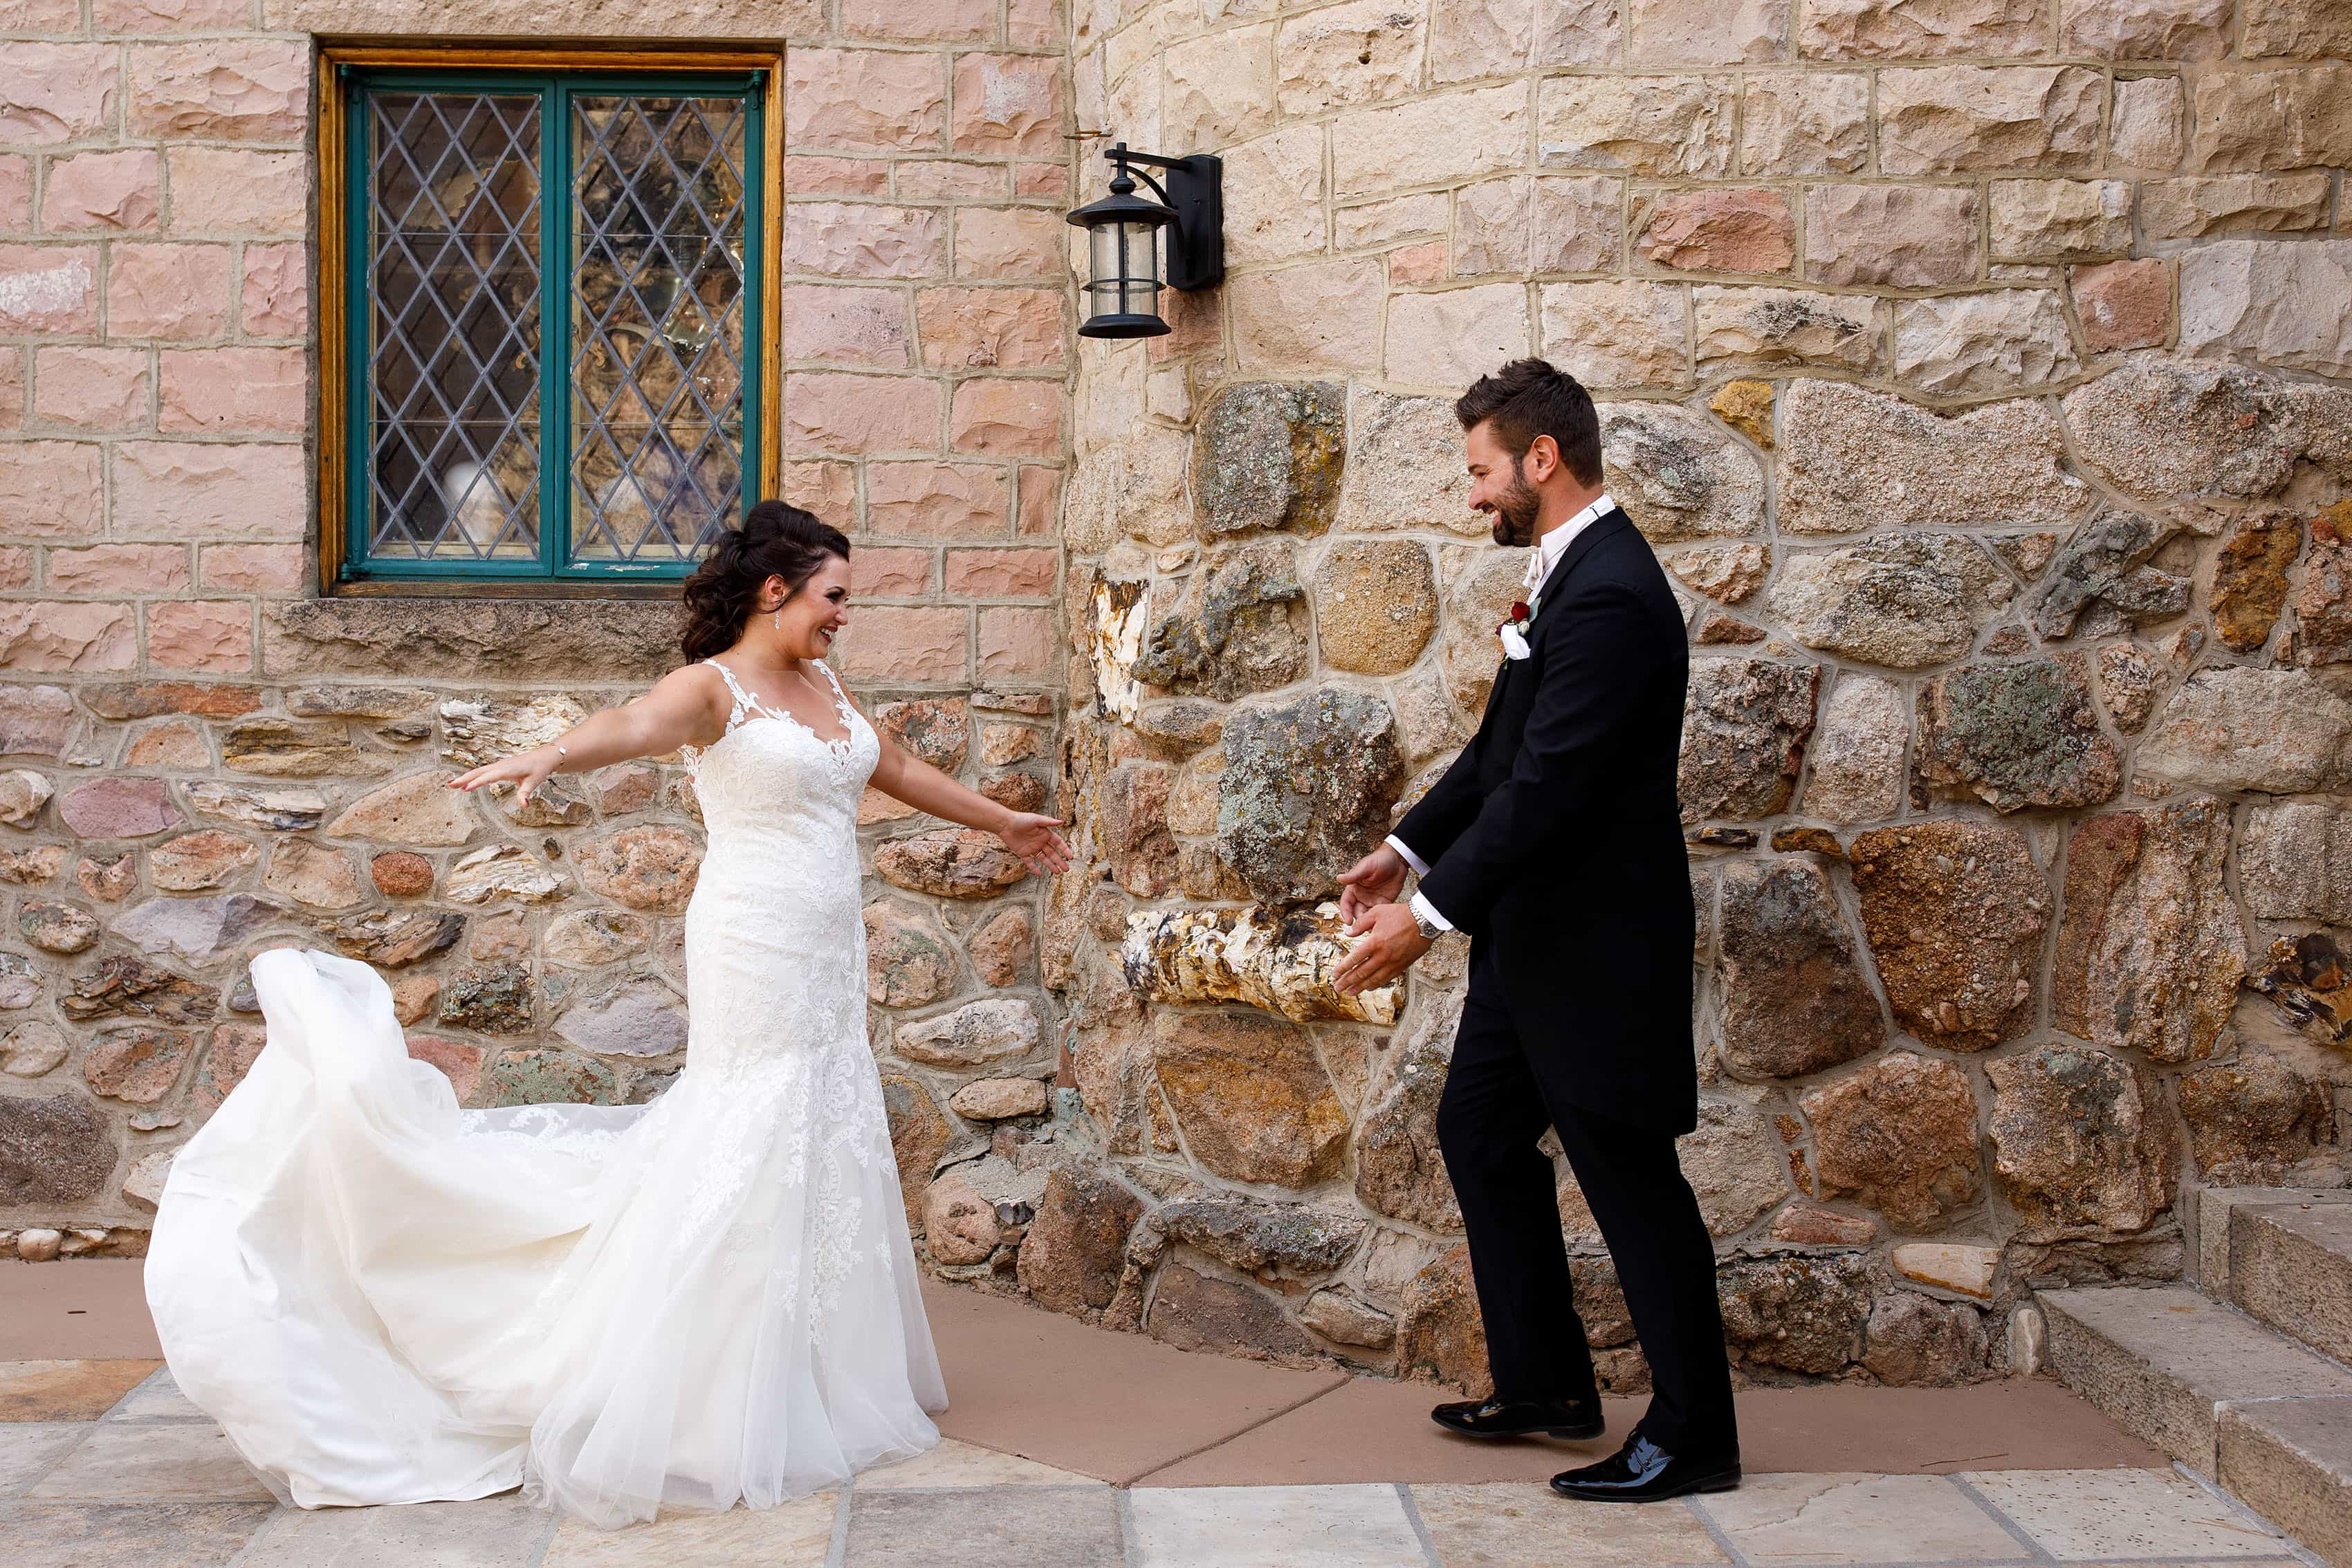 The bride and groom react during their first look before their wedding at Cherokee Ranch and Castle